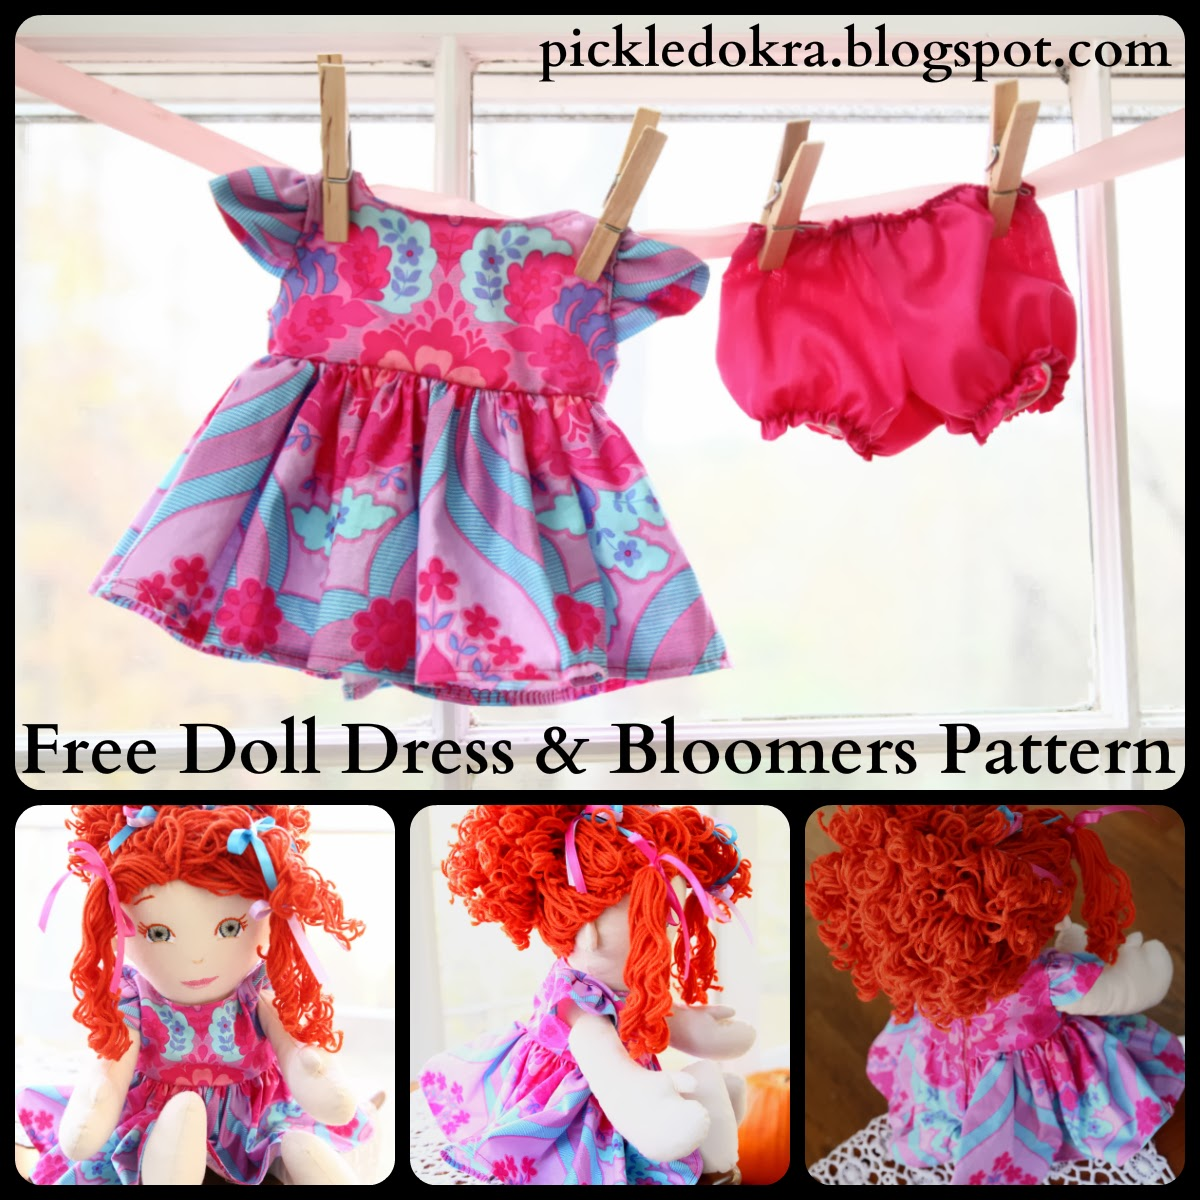 Pickled Okra by Charlie: Blythe's Nancy Doll, Free Dress Pattern